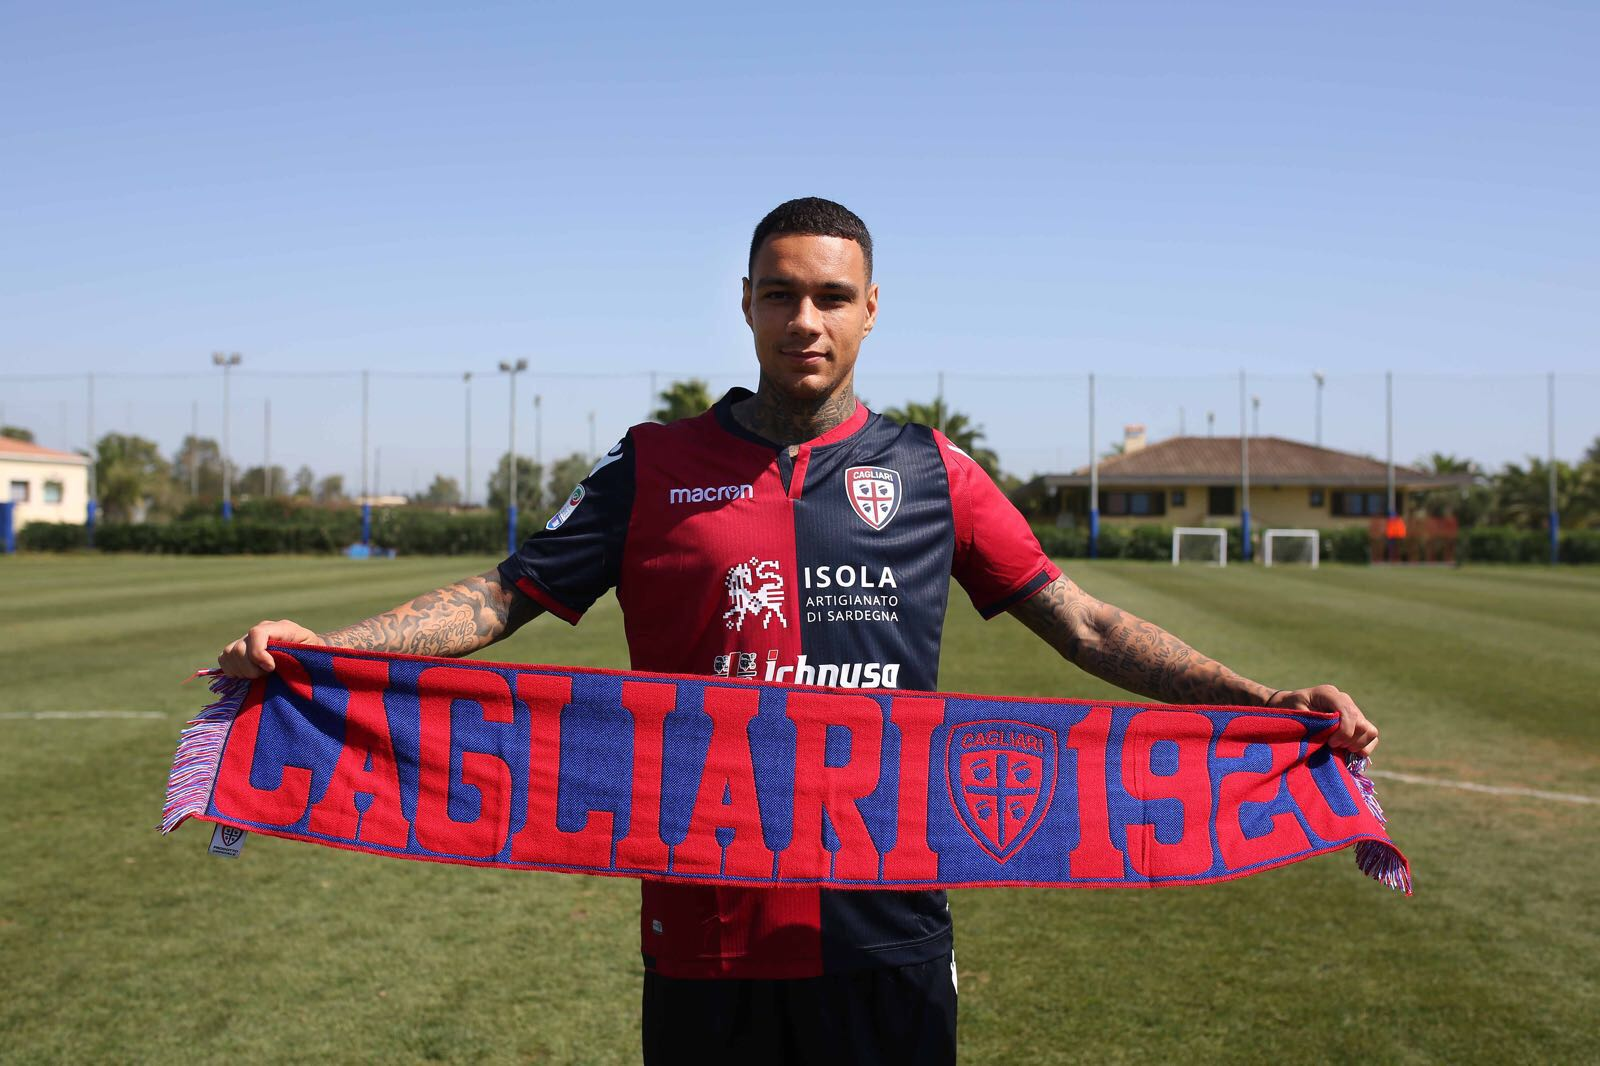 Gregory van der Wiel at Cagliari